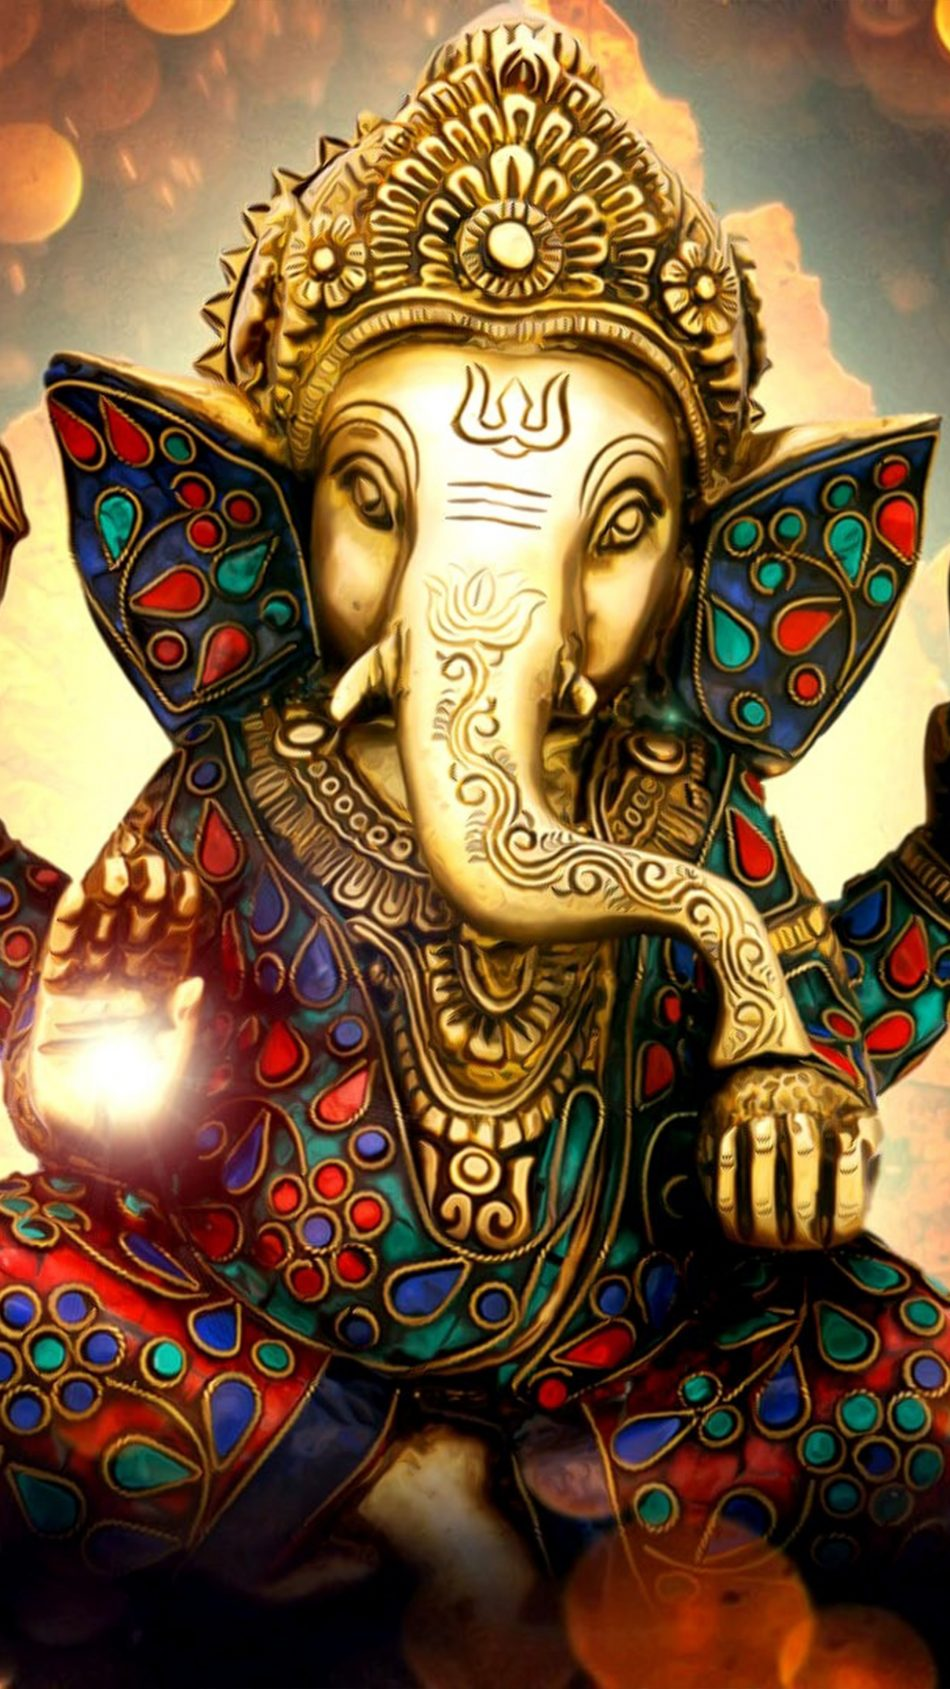 Lord Ganesha Ganapati Statue Idol 4k Ultra Hd Mobile Wallpaper